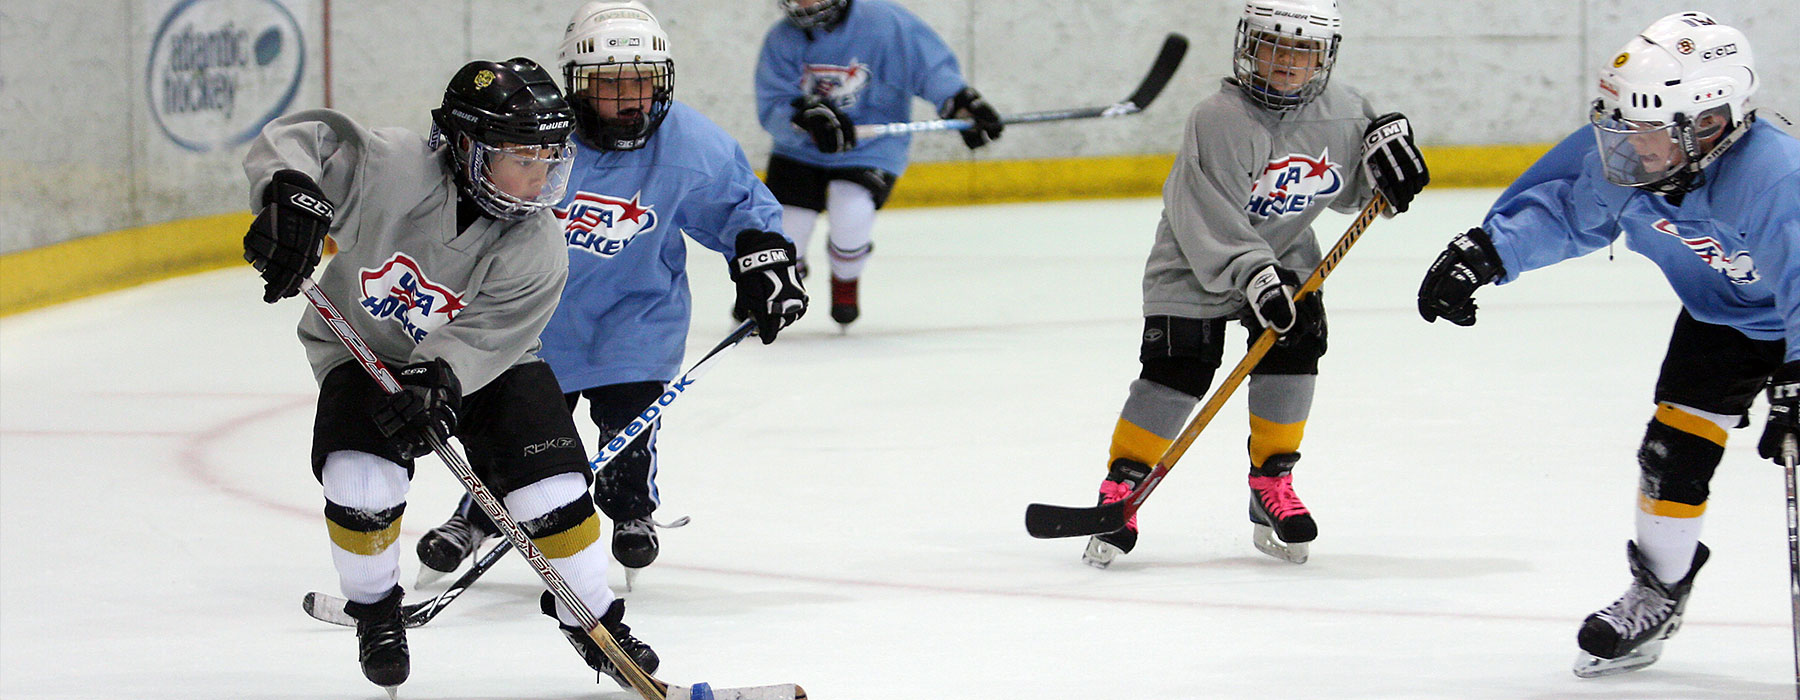 Image result for youth hockey background image